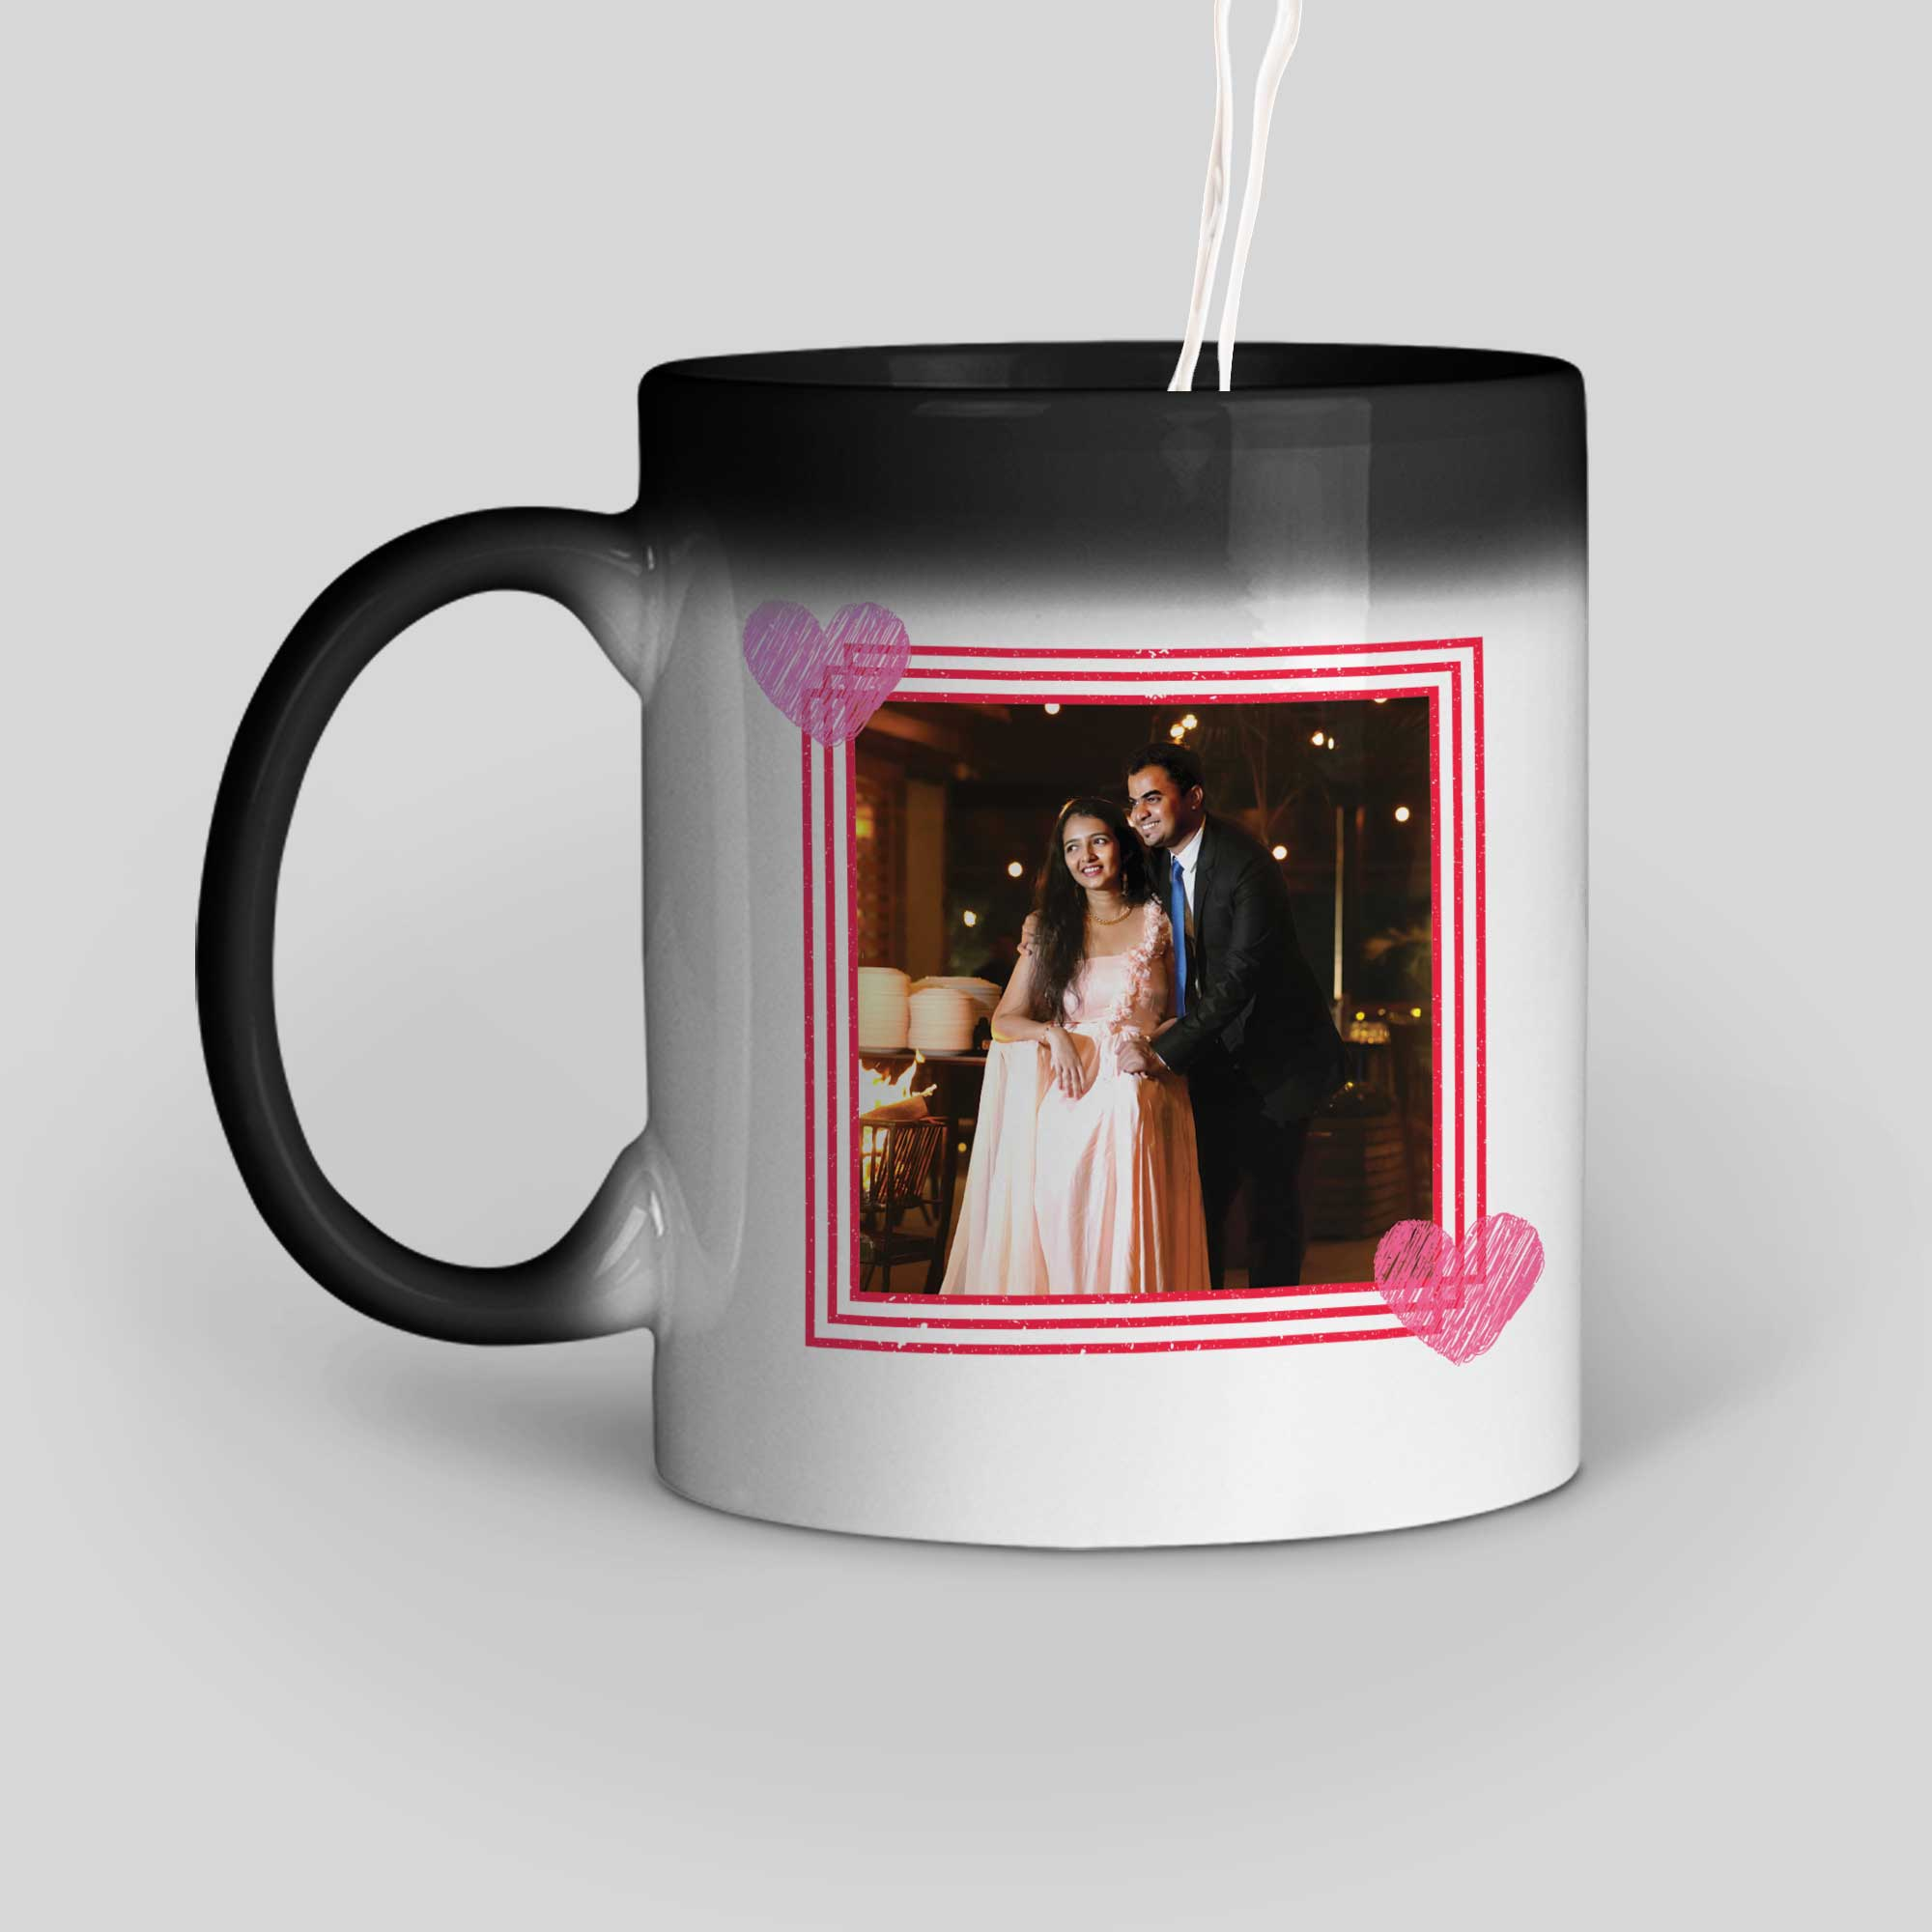 Happy Valentine's Day Personalized Magic Mug Left Side